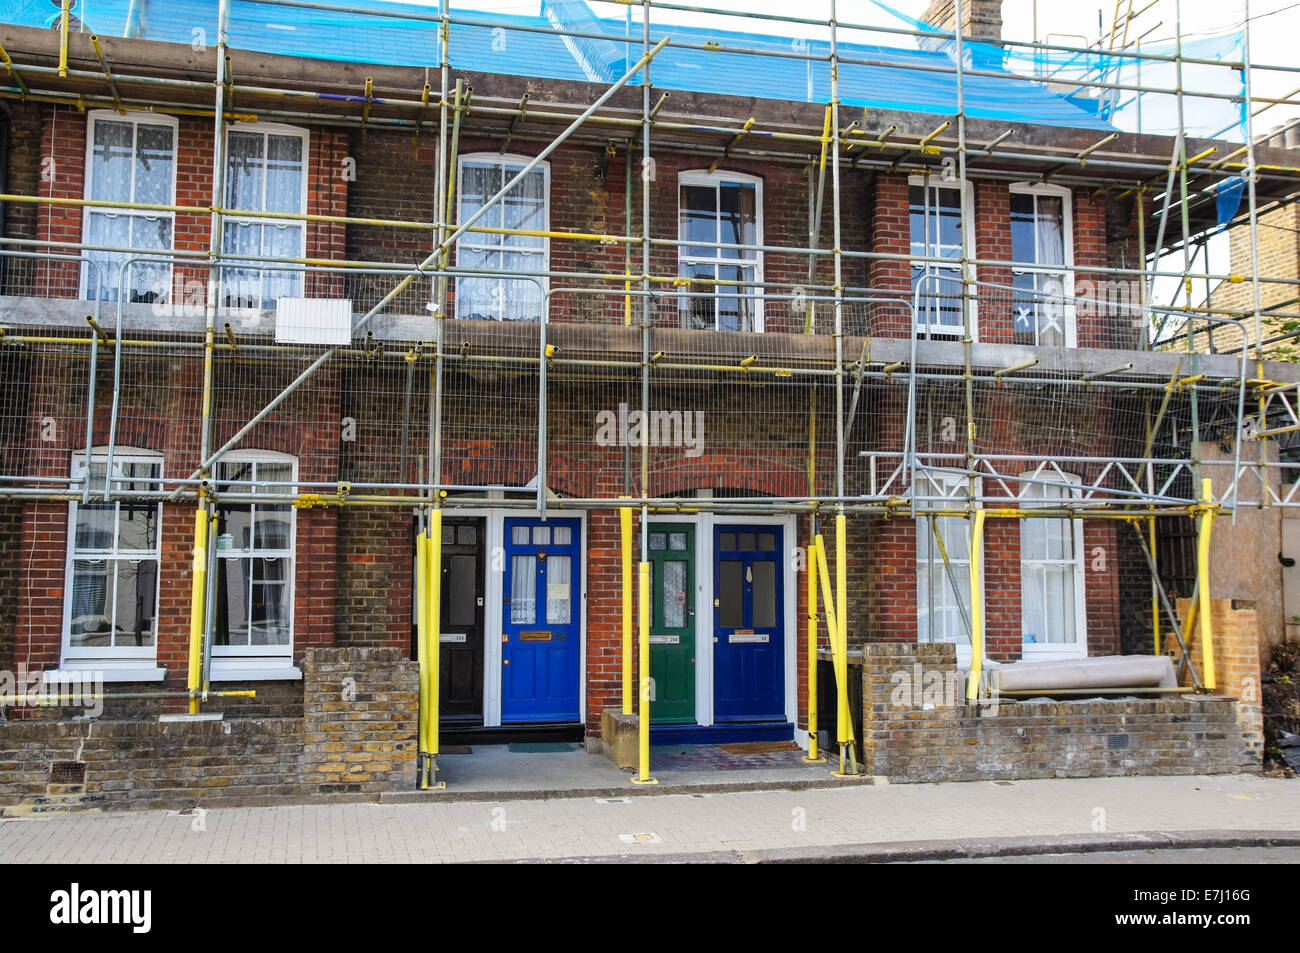 Scaffolding on the house, London England United Kingdom UK Stock Photo